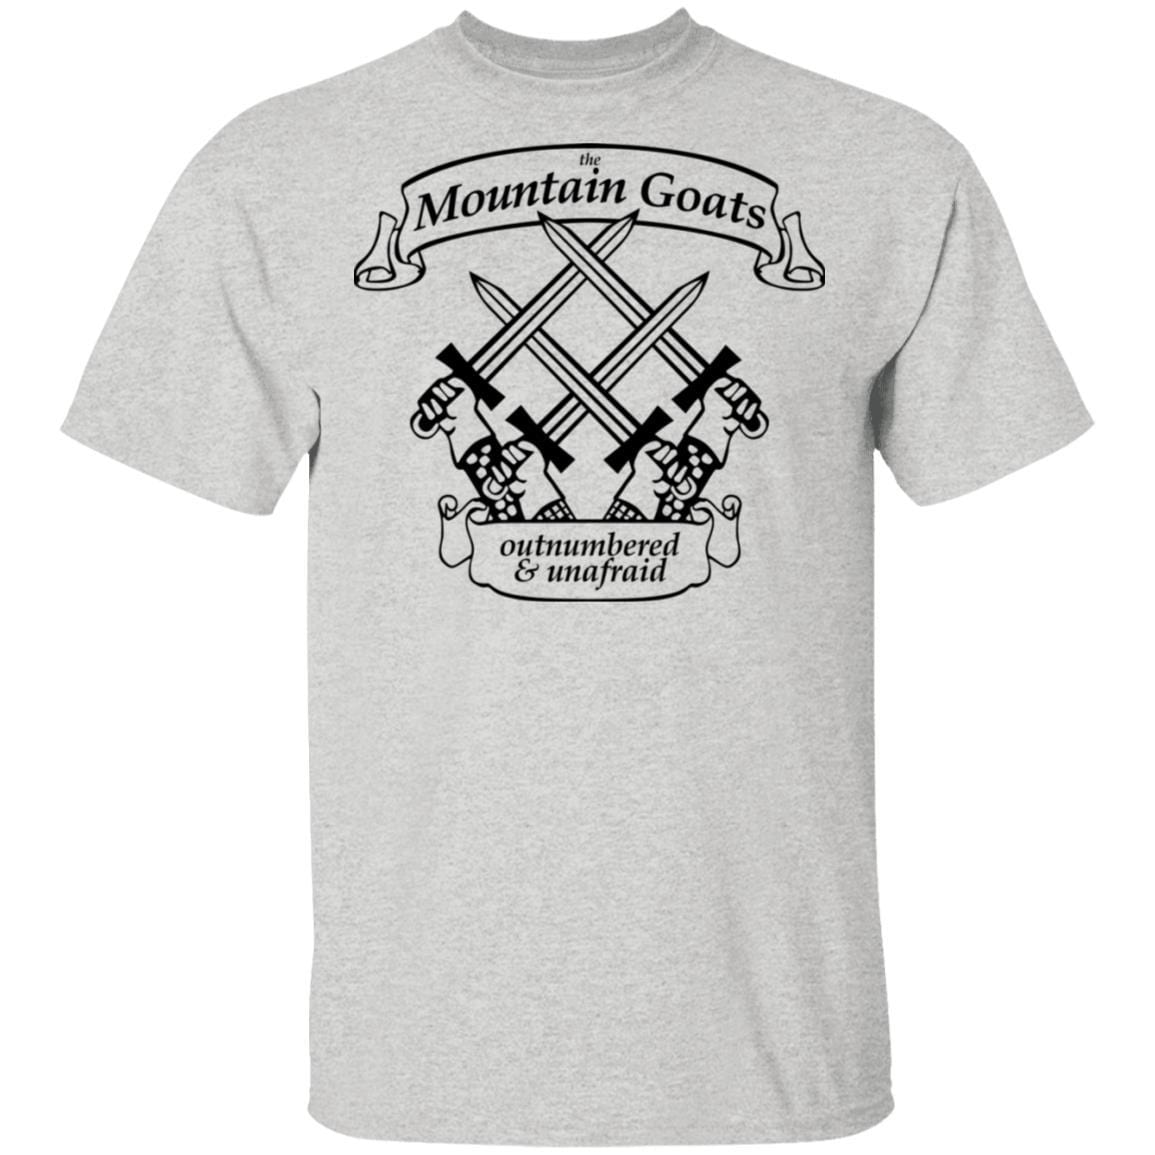 The Mountain Goats Outnumbered And Unafraid T-Shirts, Hoodies 1049-9952-92948169-48184 - Tee Ript